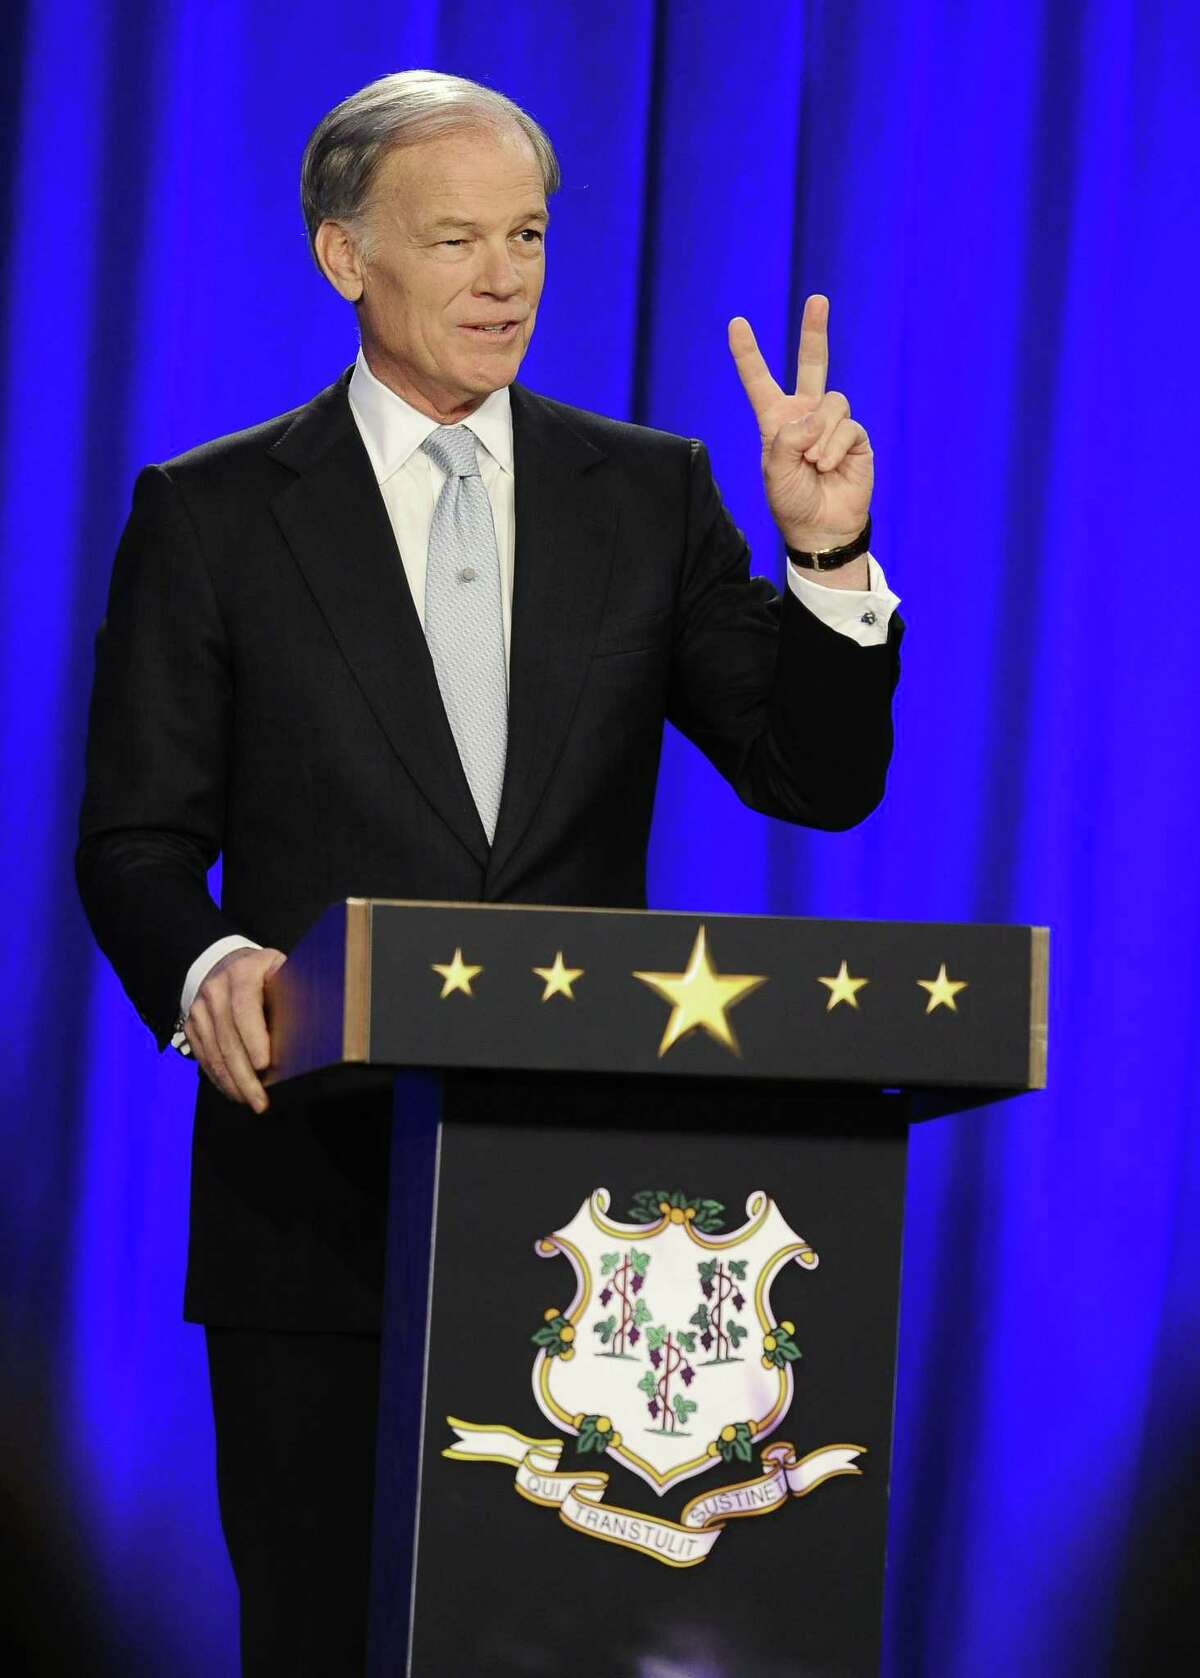 Republican candidate for governor Tom Foley gestures as he speaks during a debate with Gov. Dannel P. Malloy Thursday in Hartford.